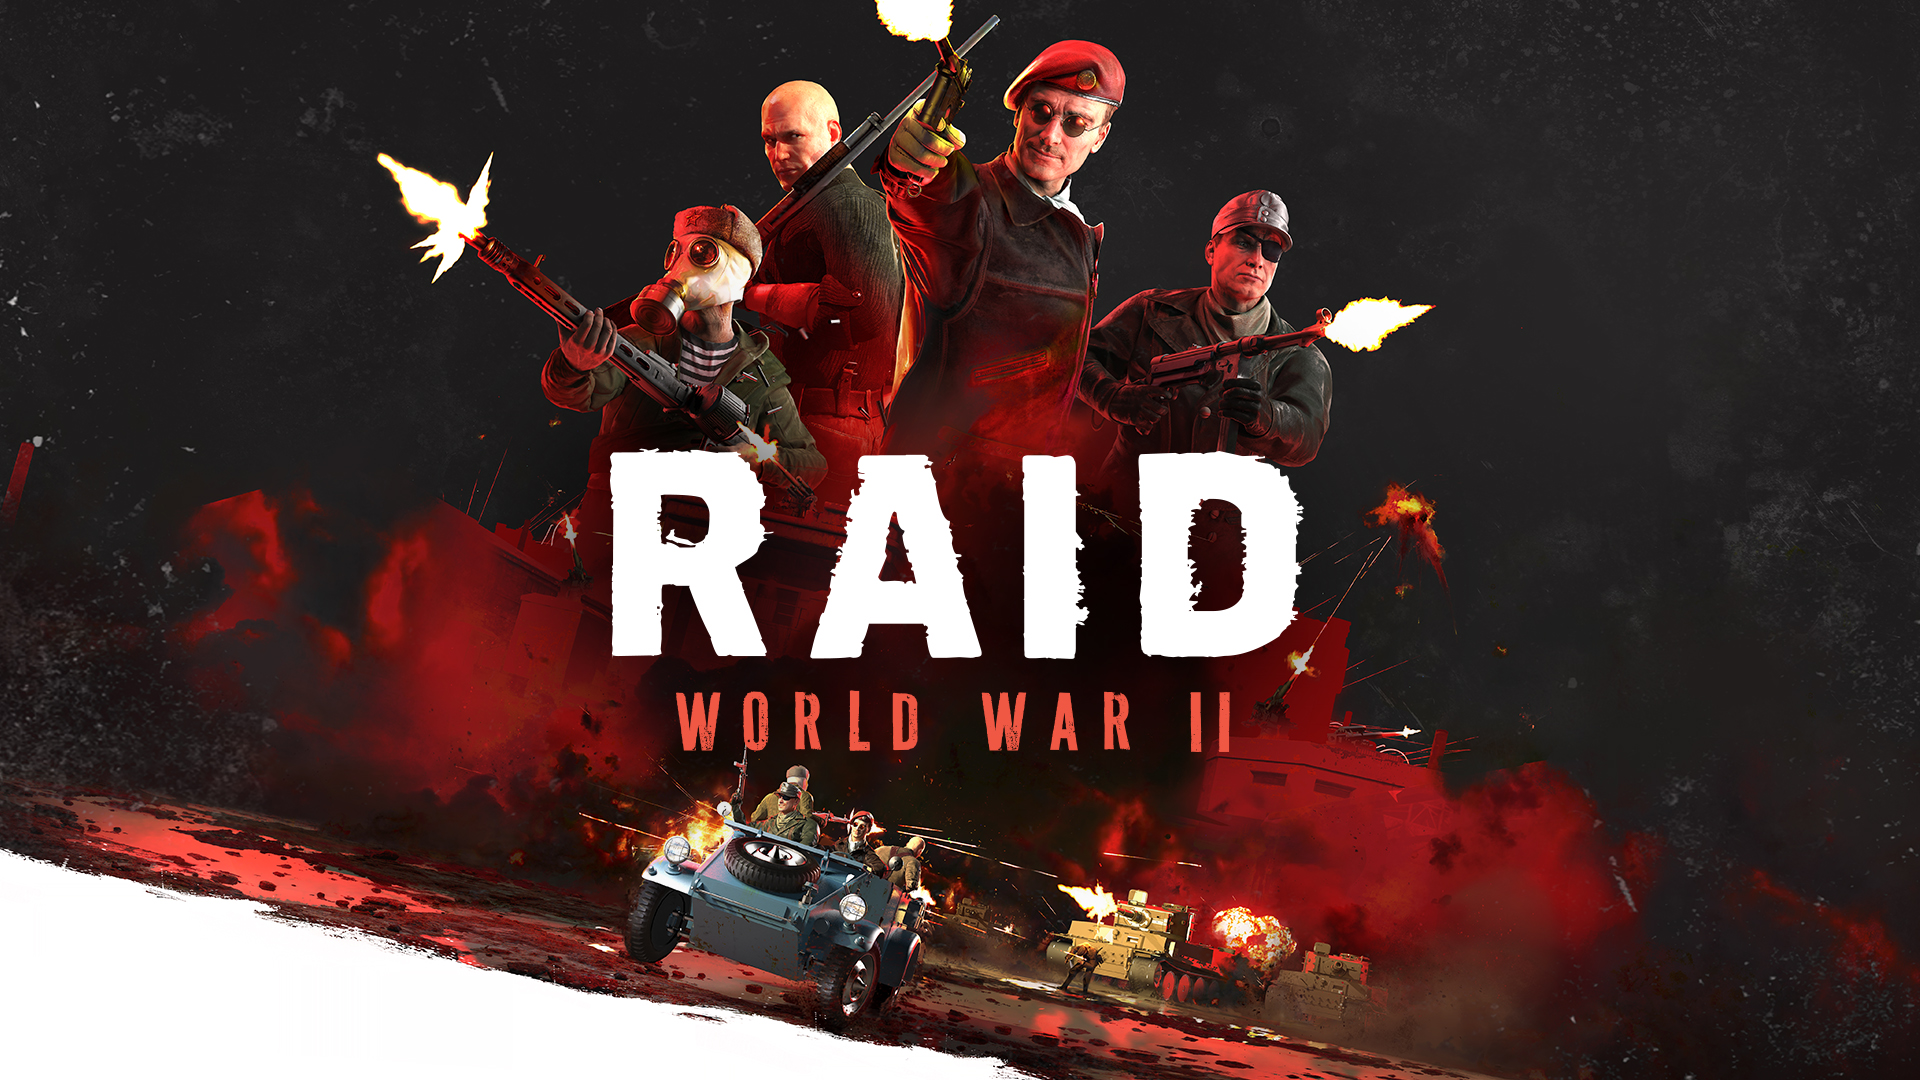 RAID World War II Available Today On Steam For Windows PC